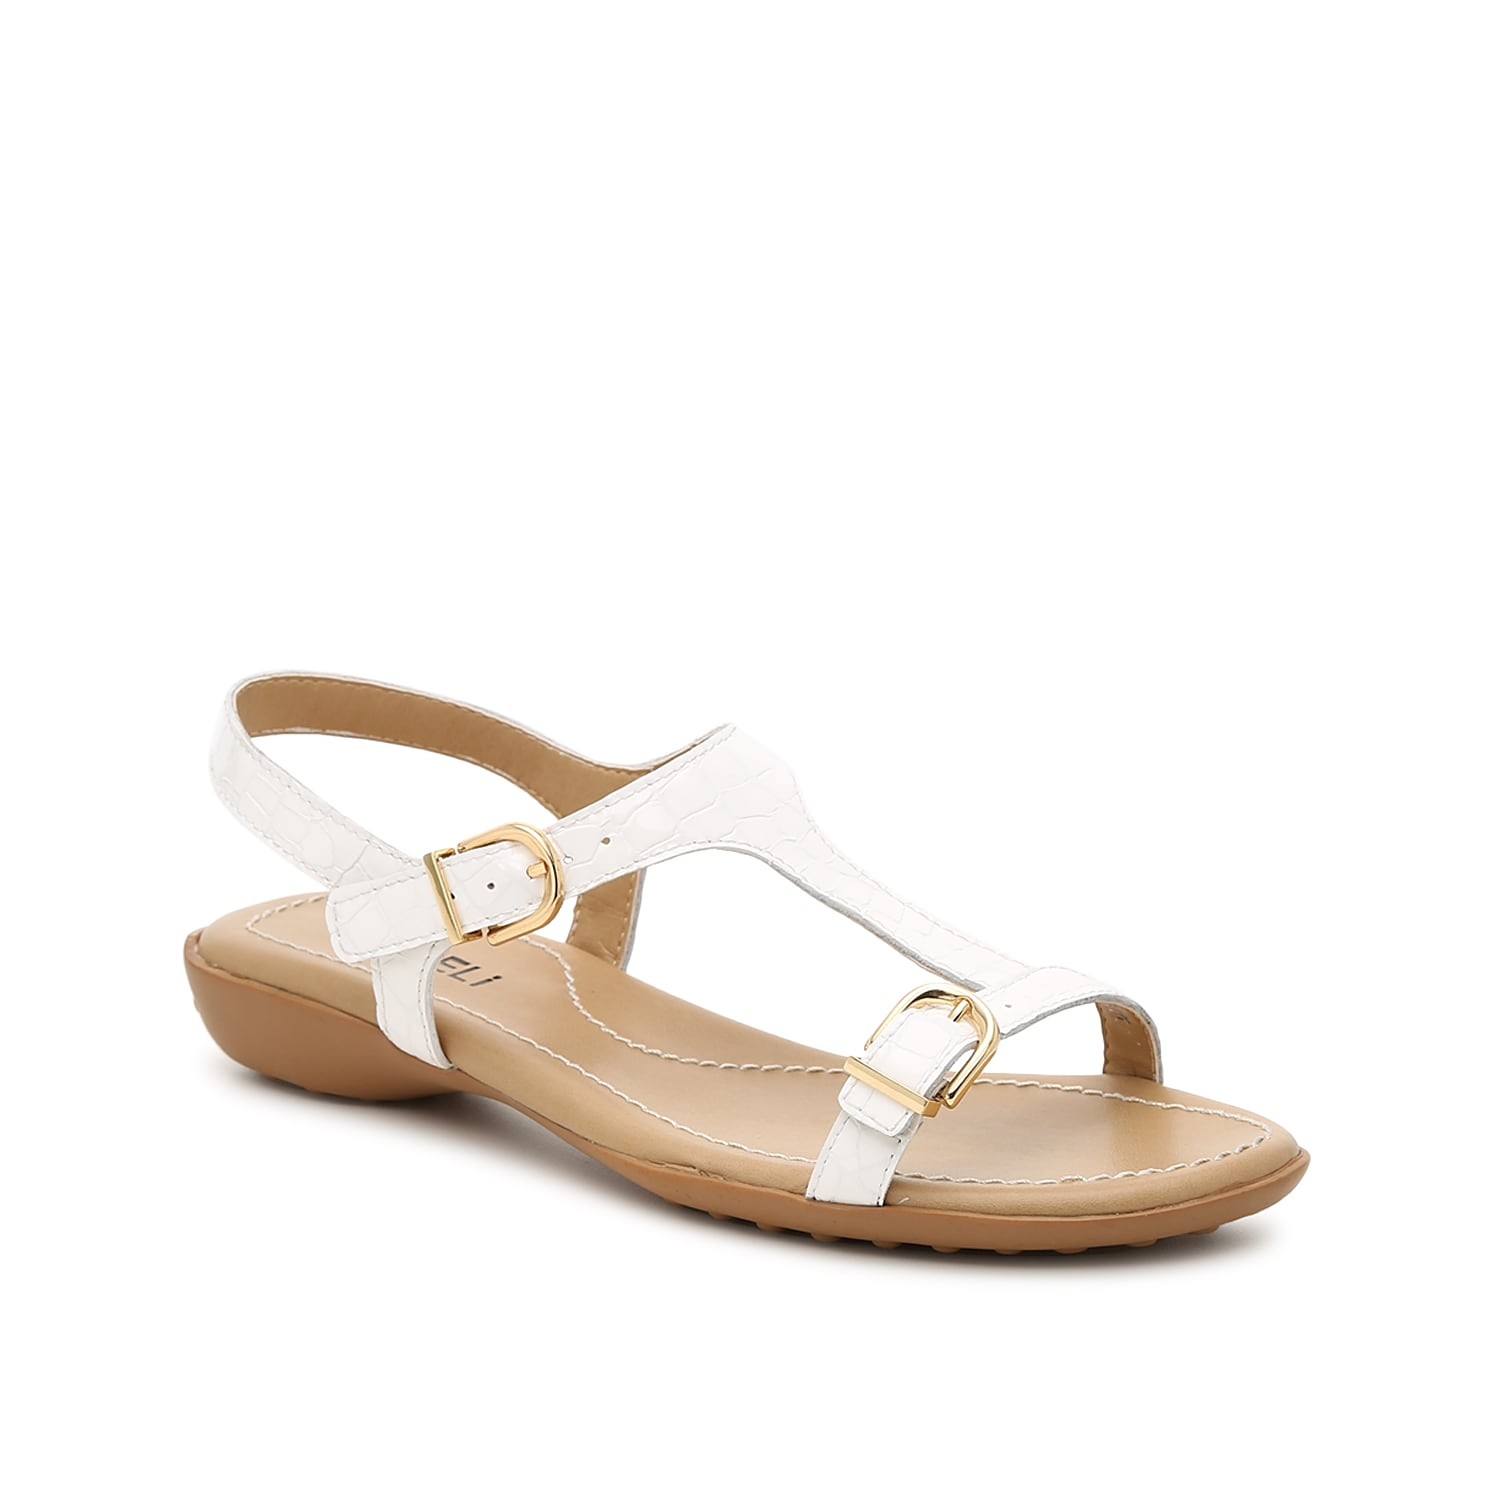 Top off your warm-weather shoe collection with the Taletha sandal from VANELi. This silhouette is fashioned with exposed buckle accents and a subtle heel for the right amount of height!